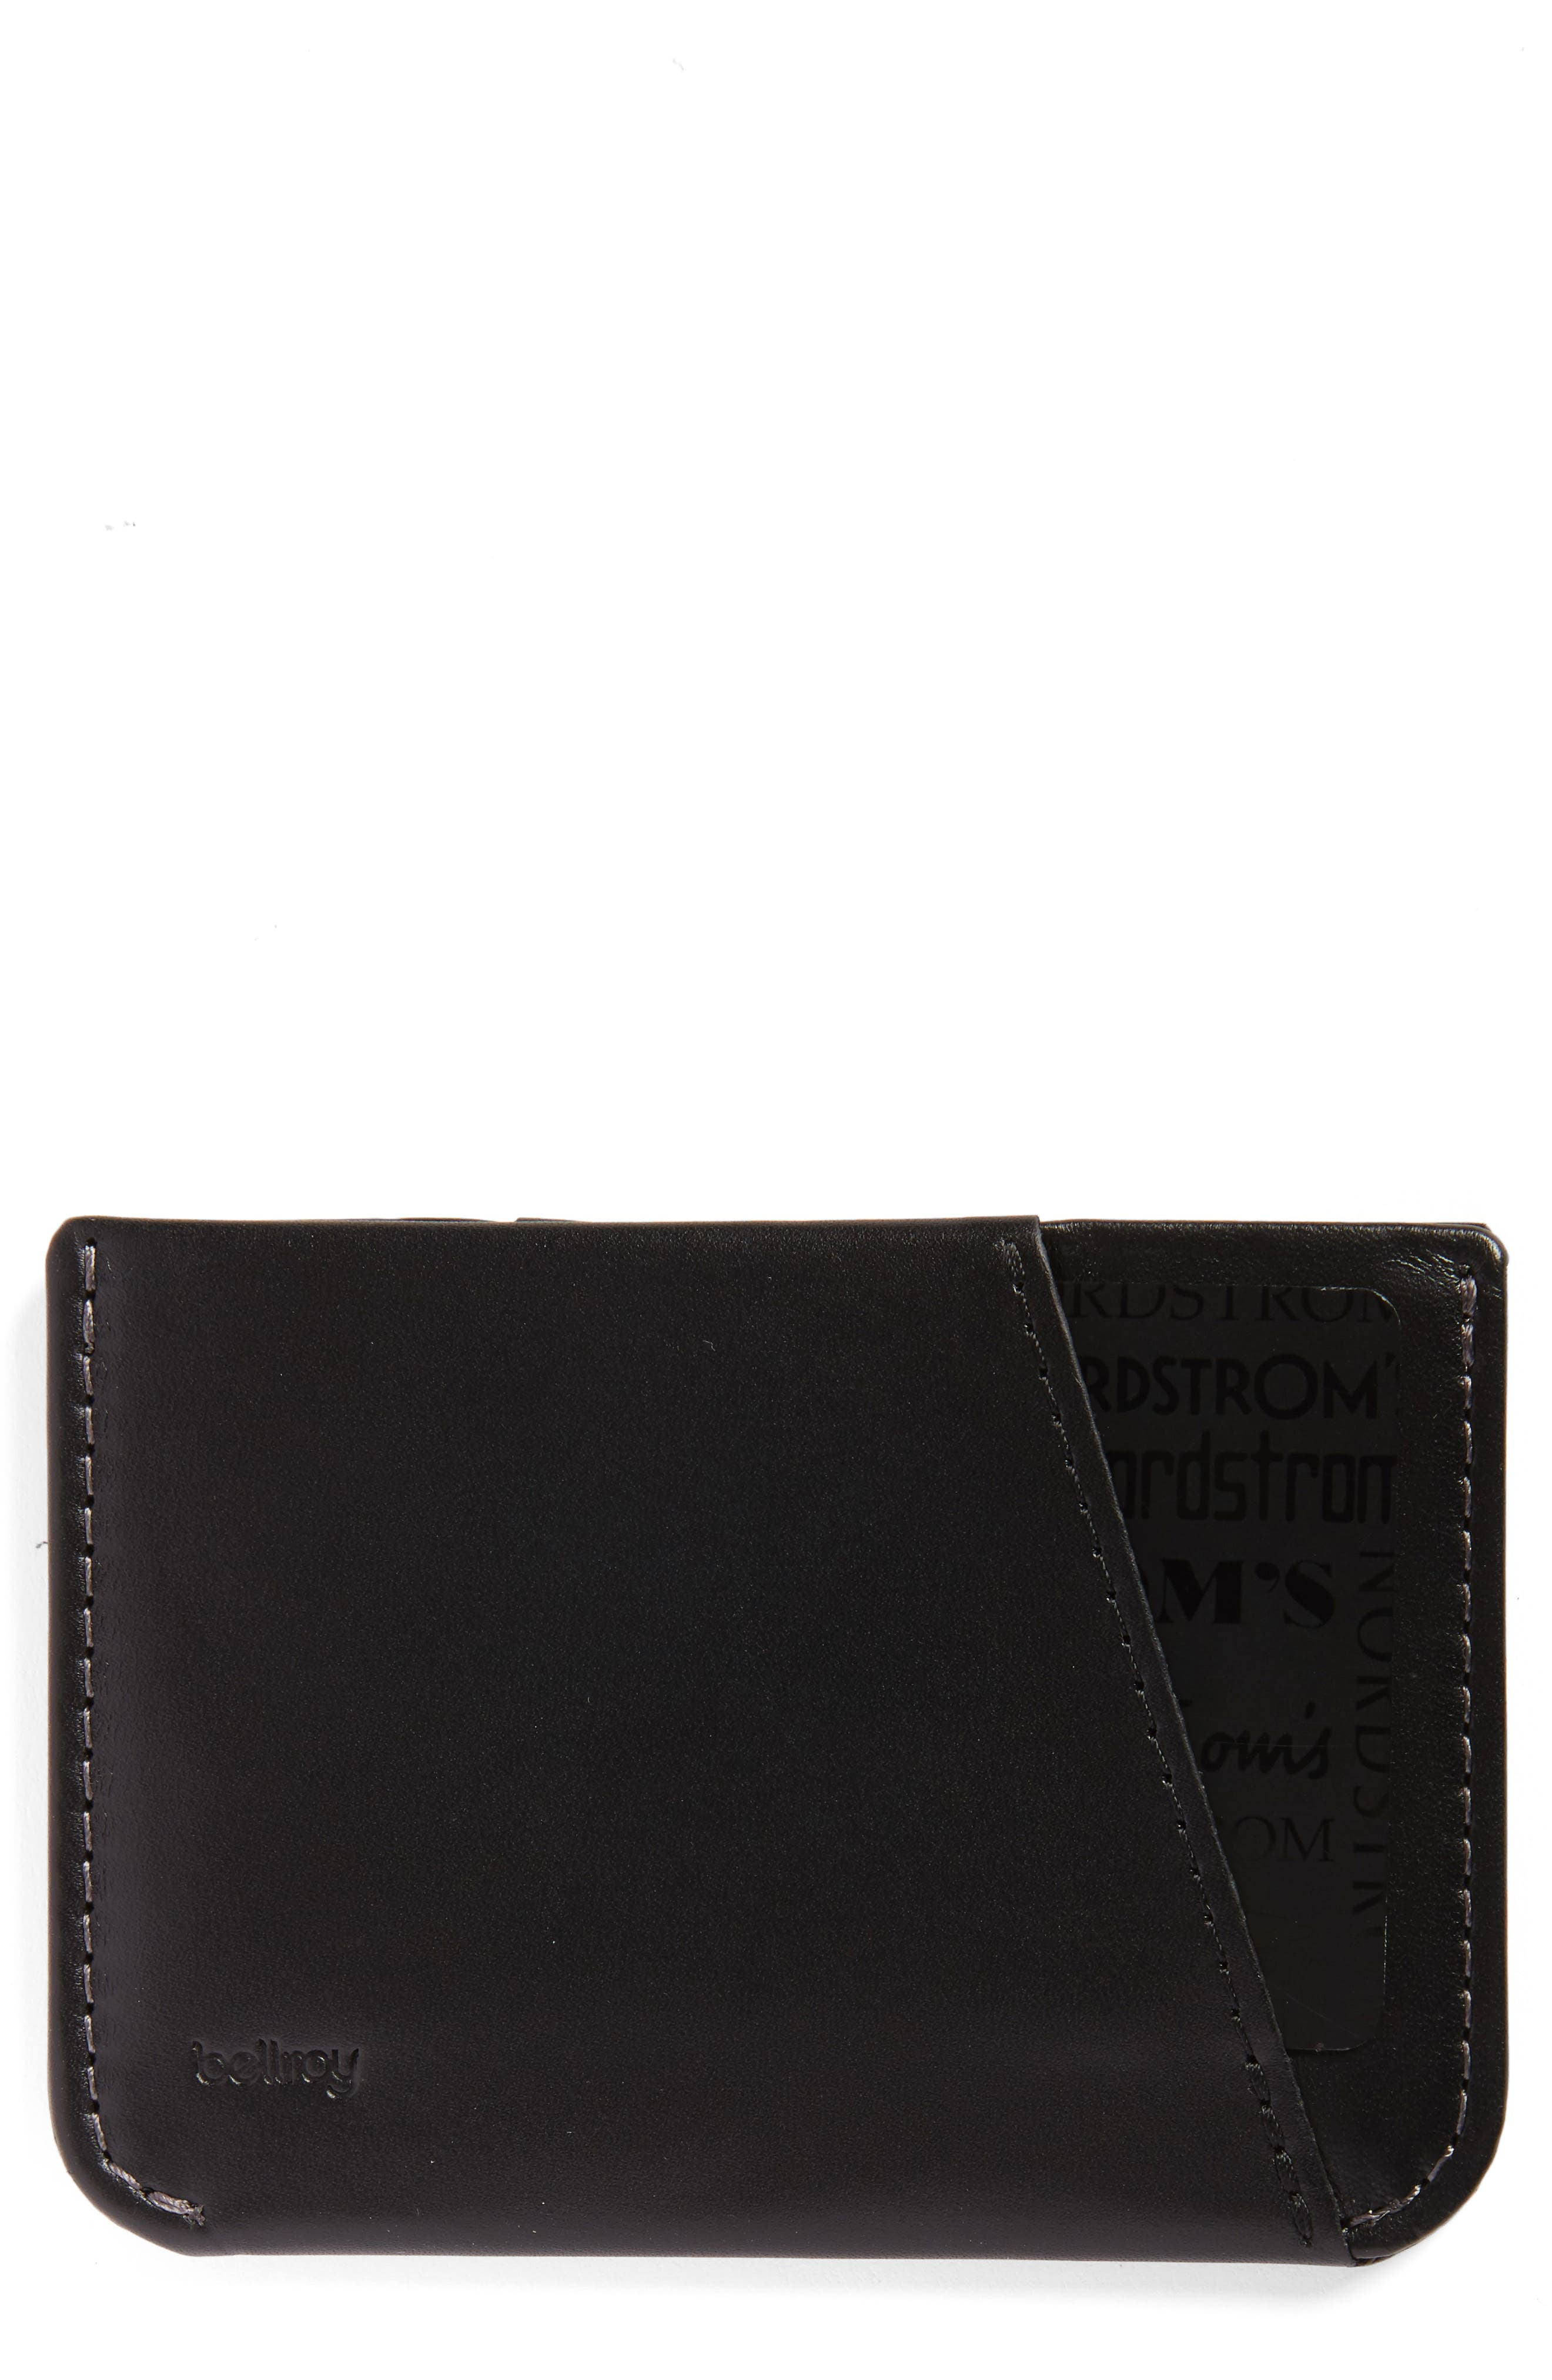 Main Image - Bellroy Micro Sleeve Card Case